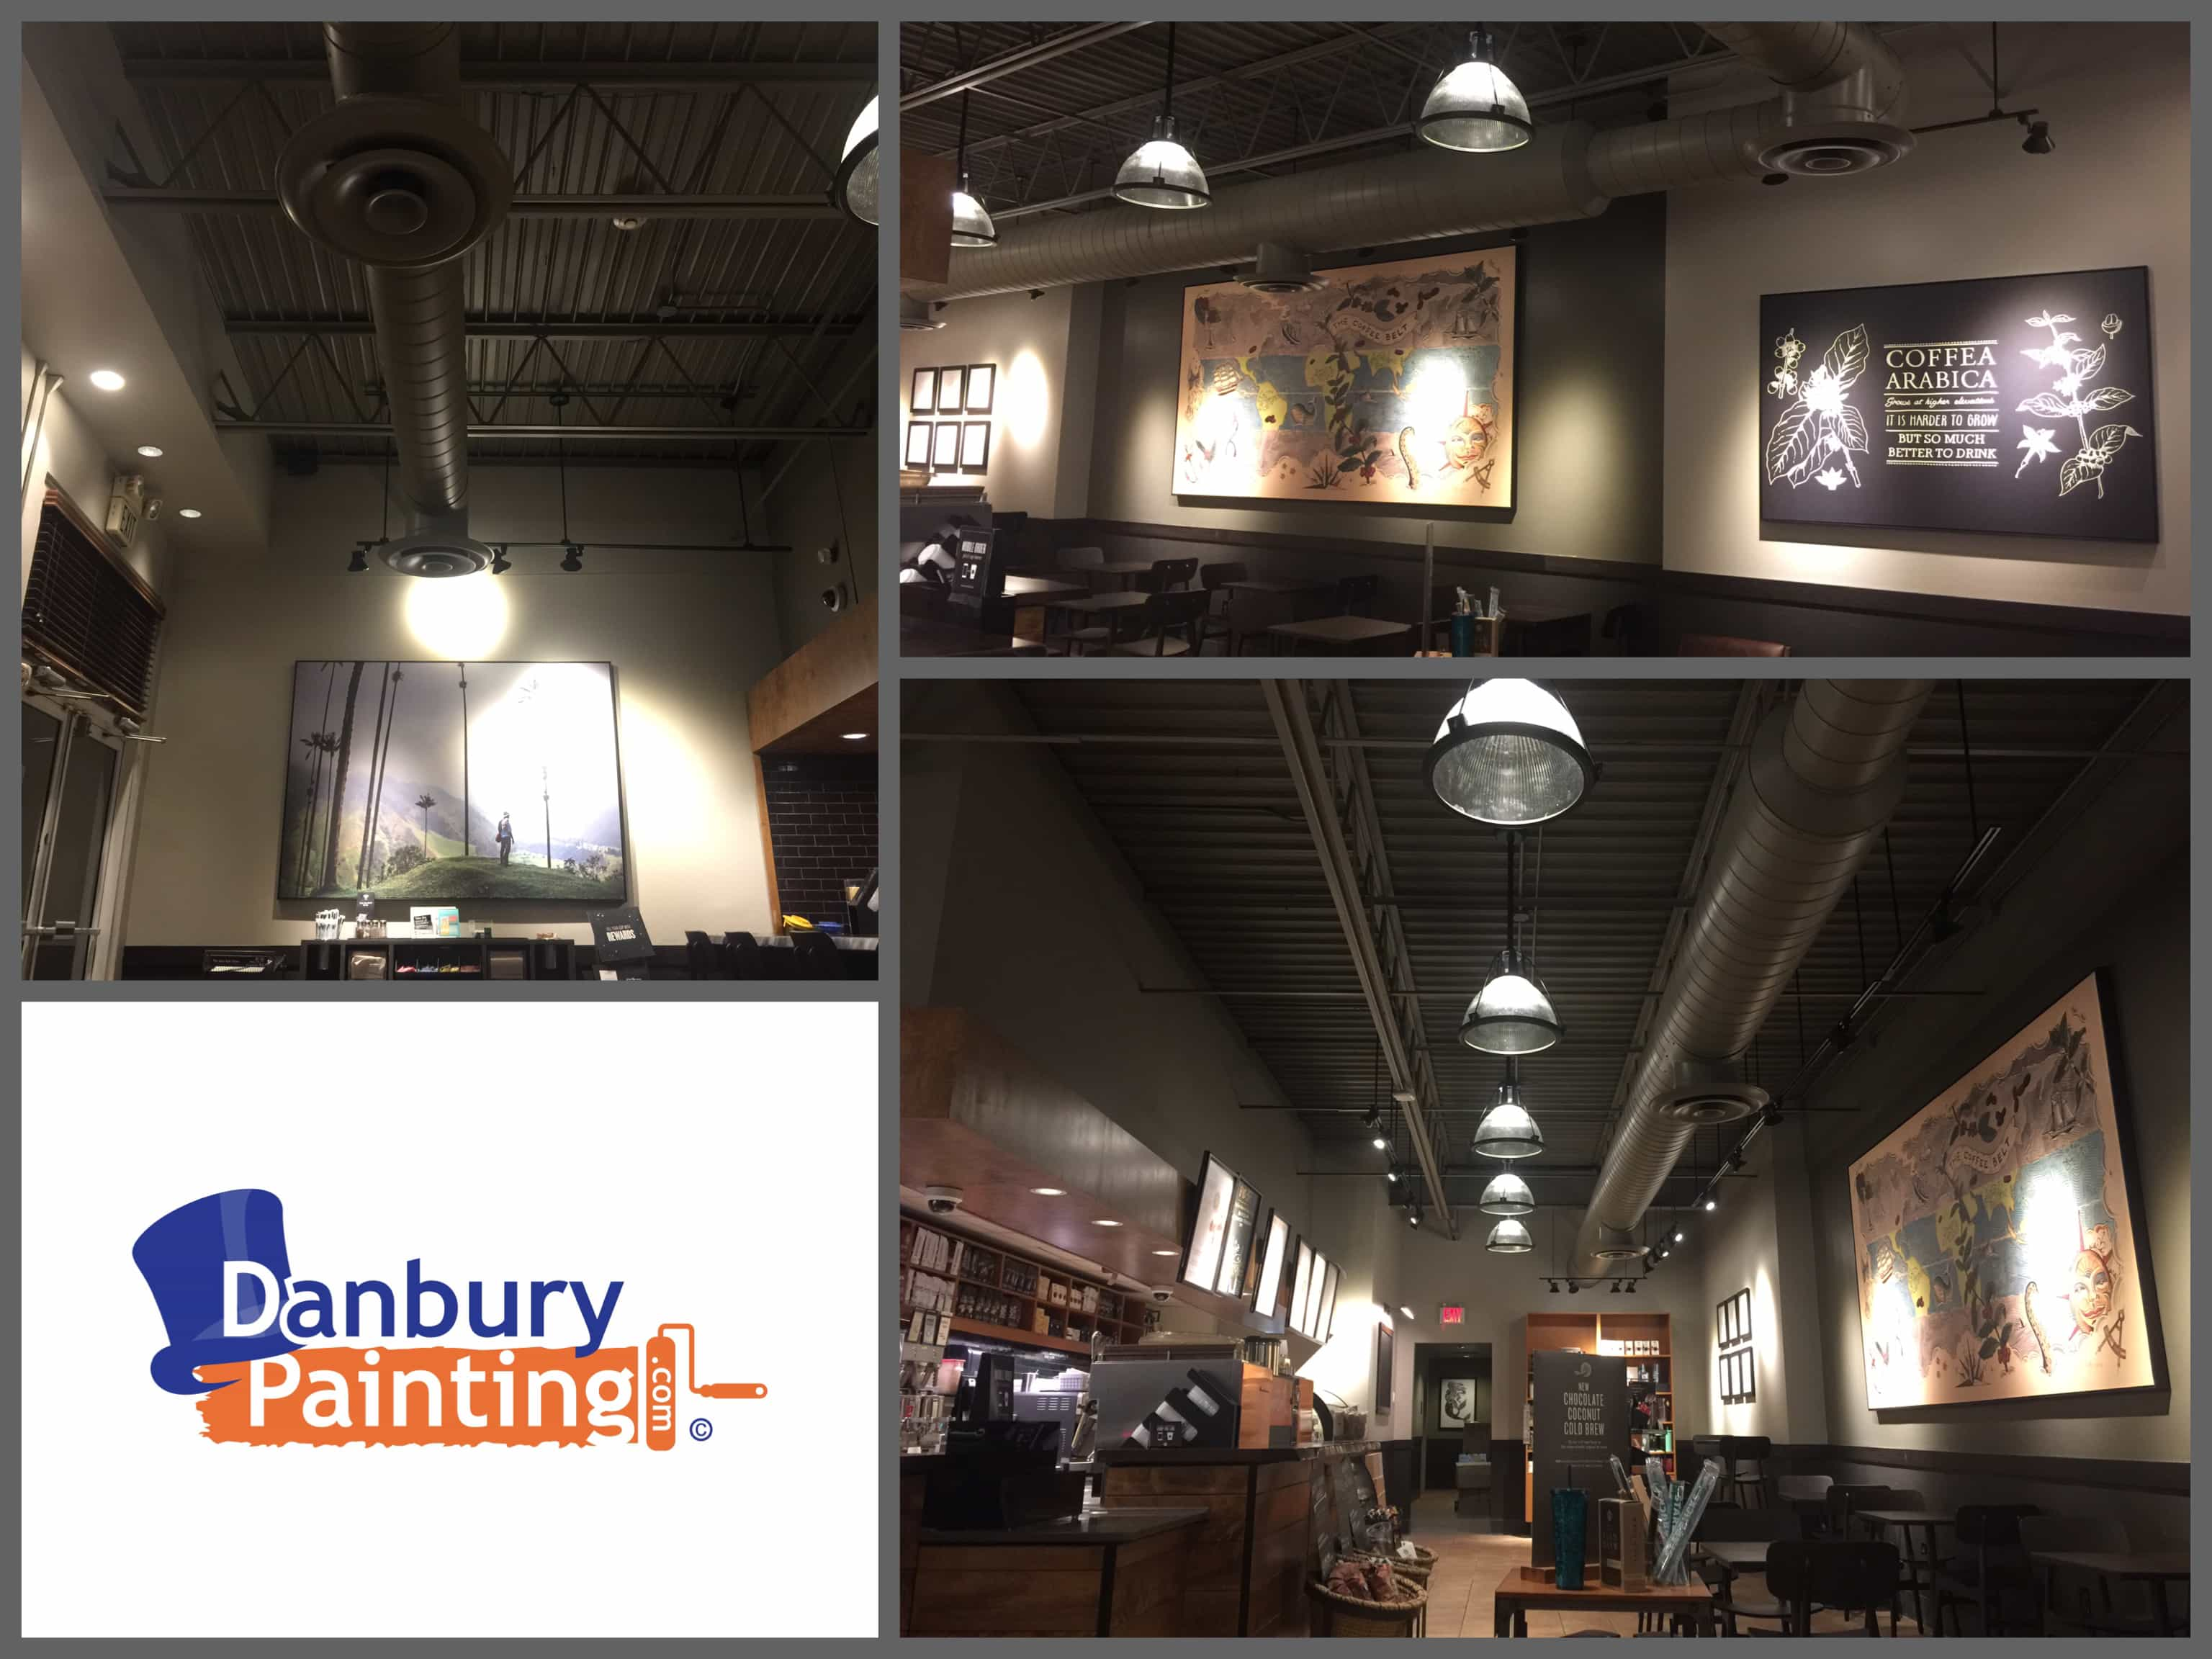 Commercial Interior Painting Company Danbury Ct